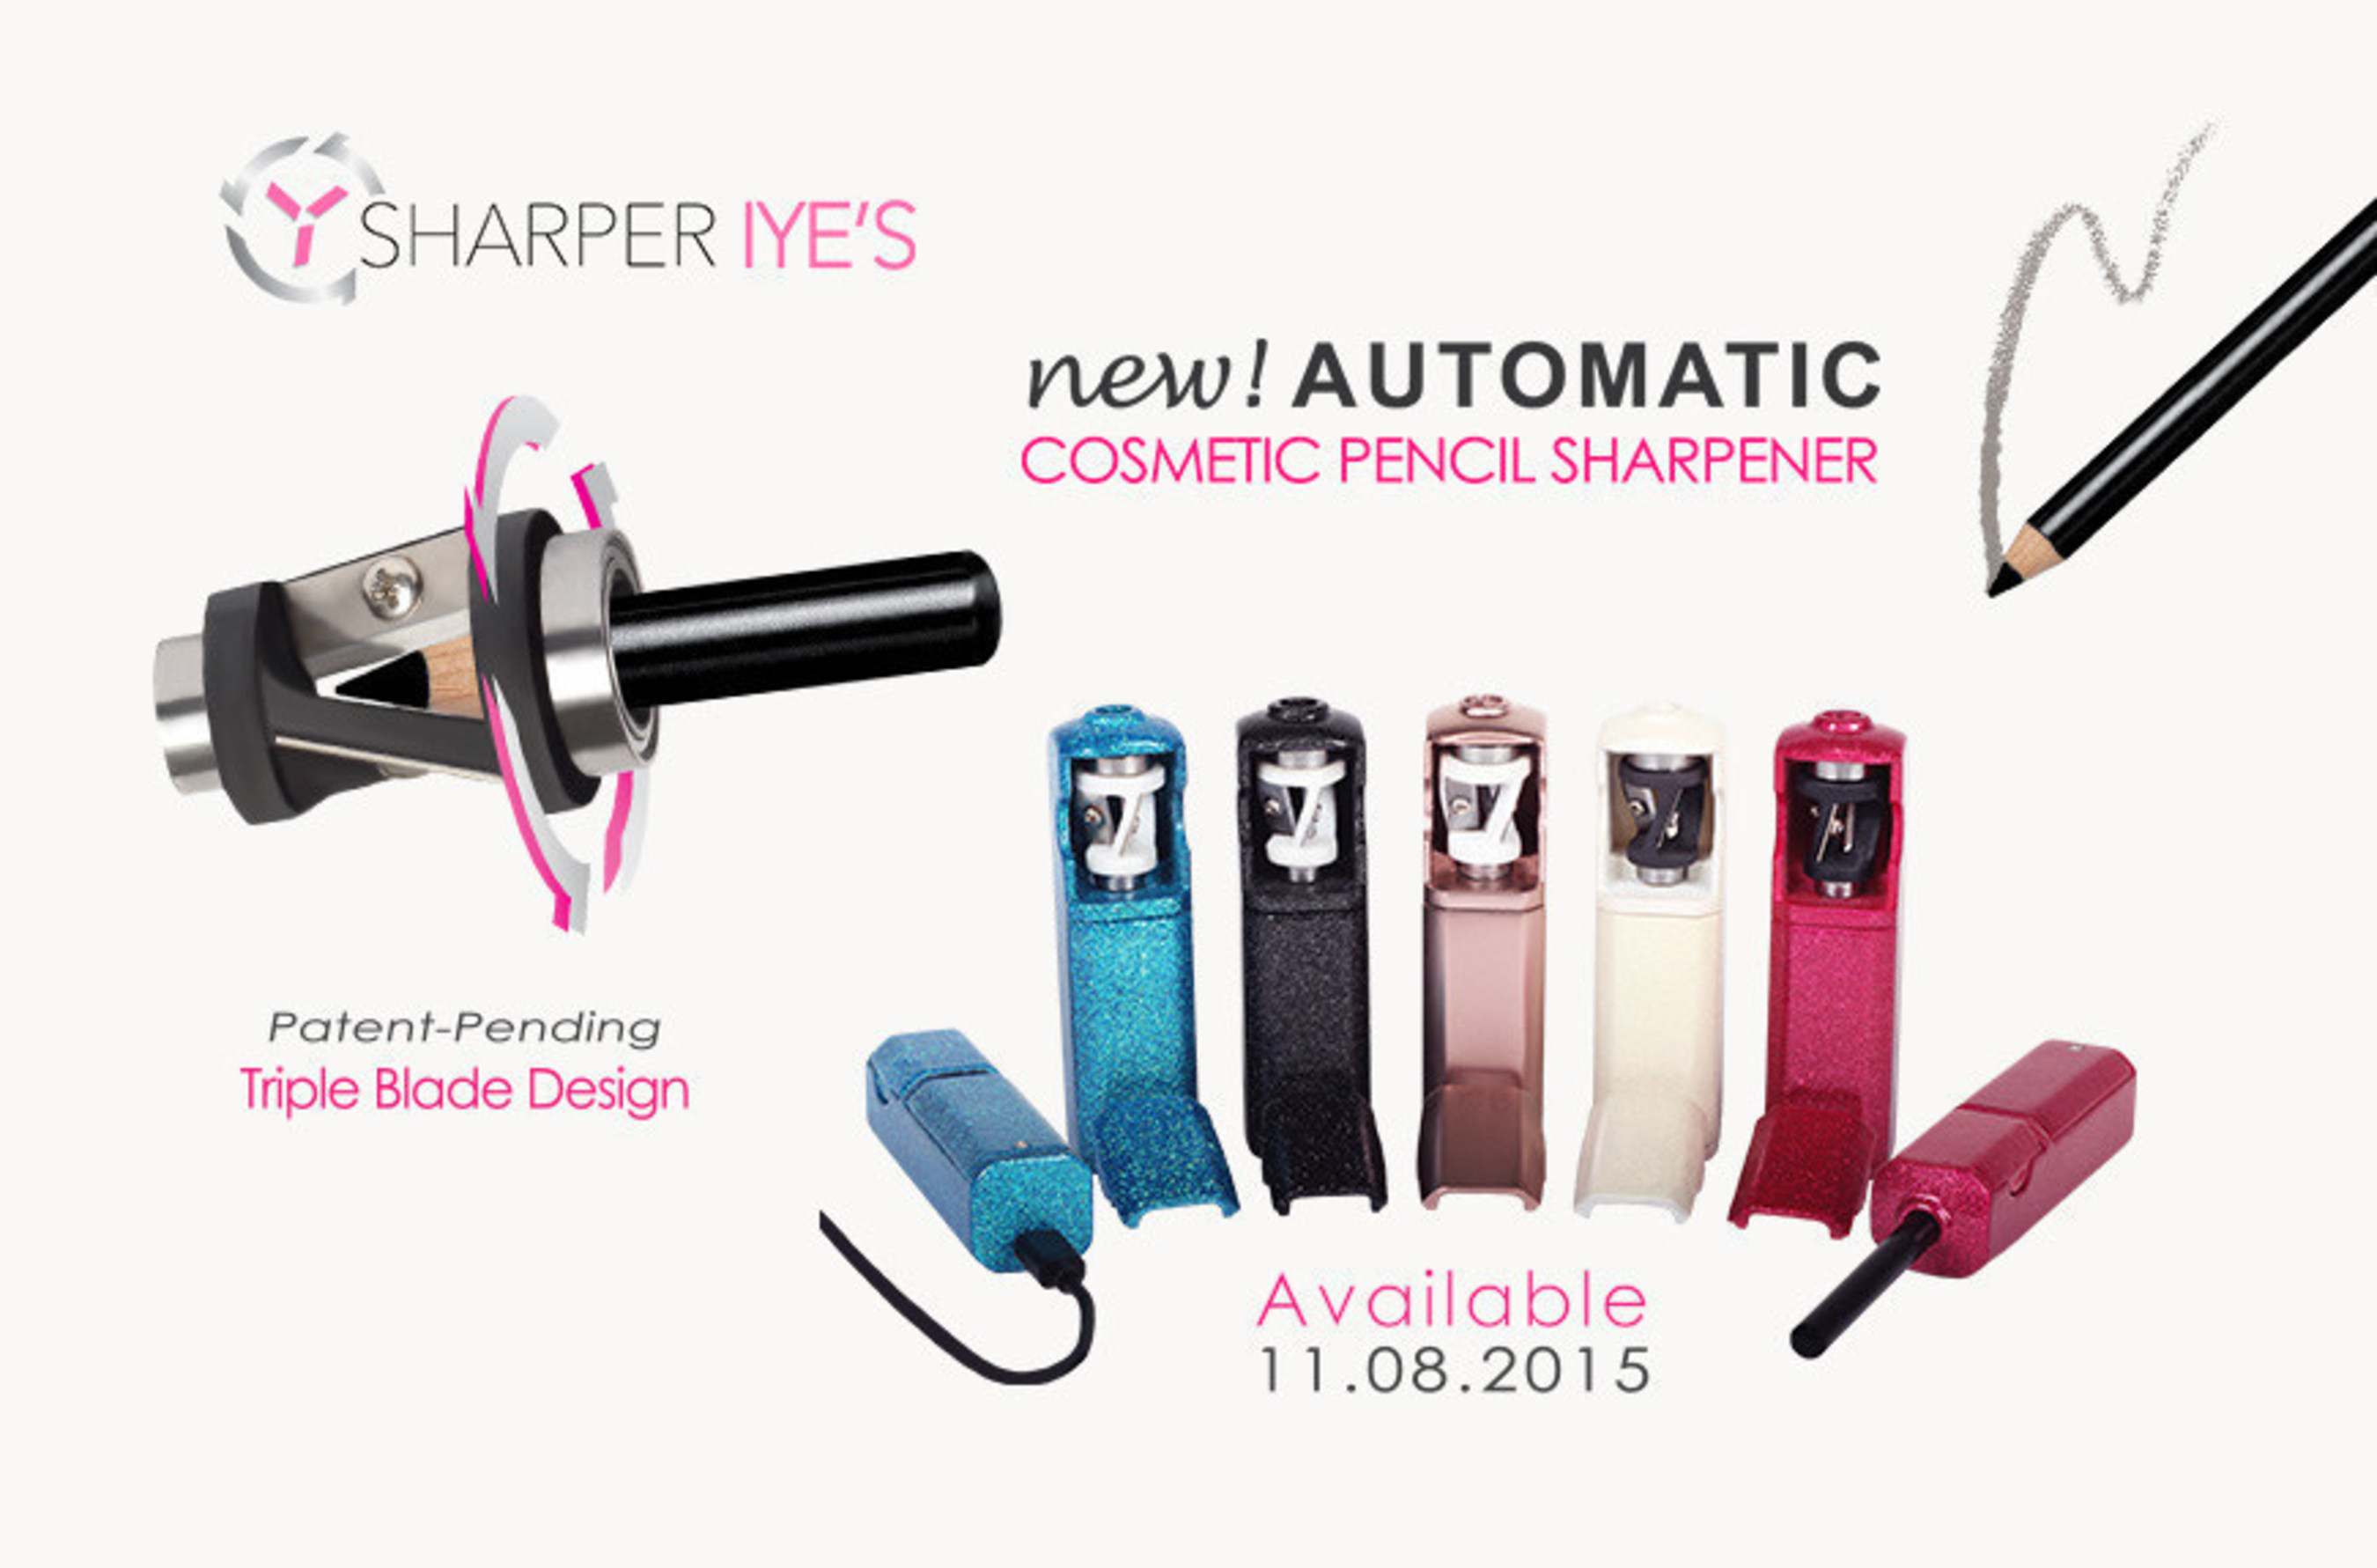 Introducing: Sharper Iye's, the NEW Automatic Cosmetic Sharpener